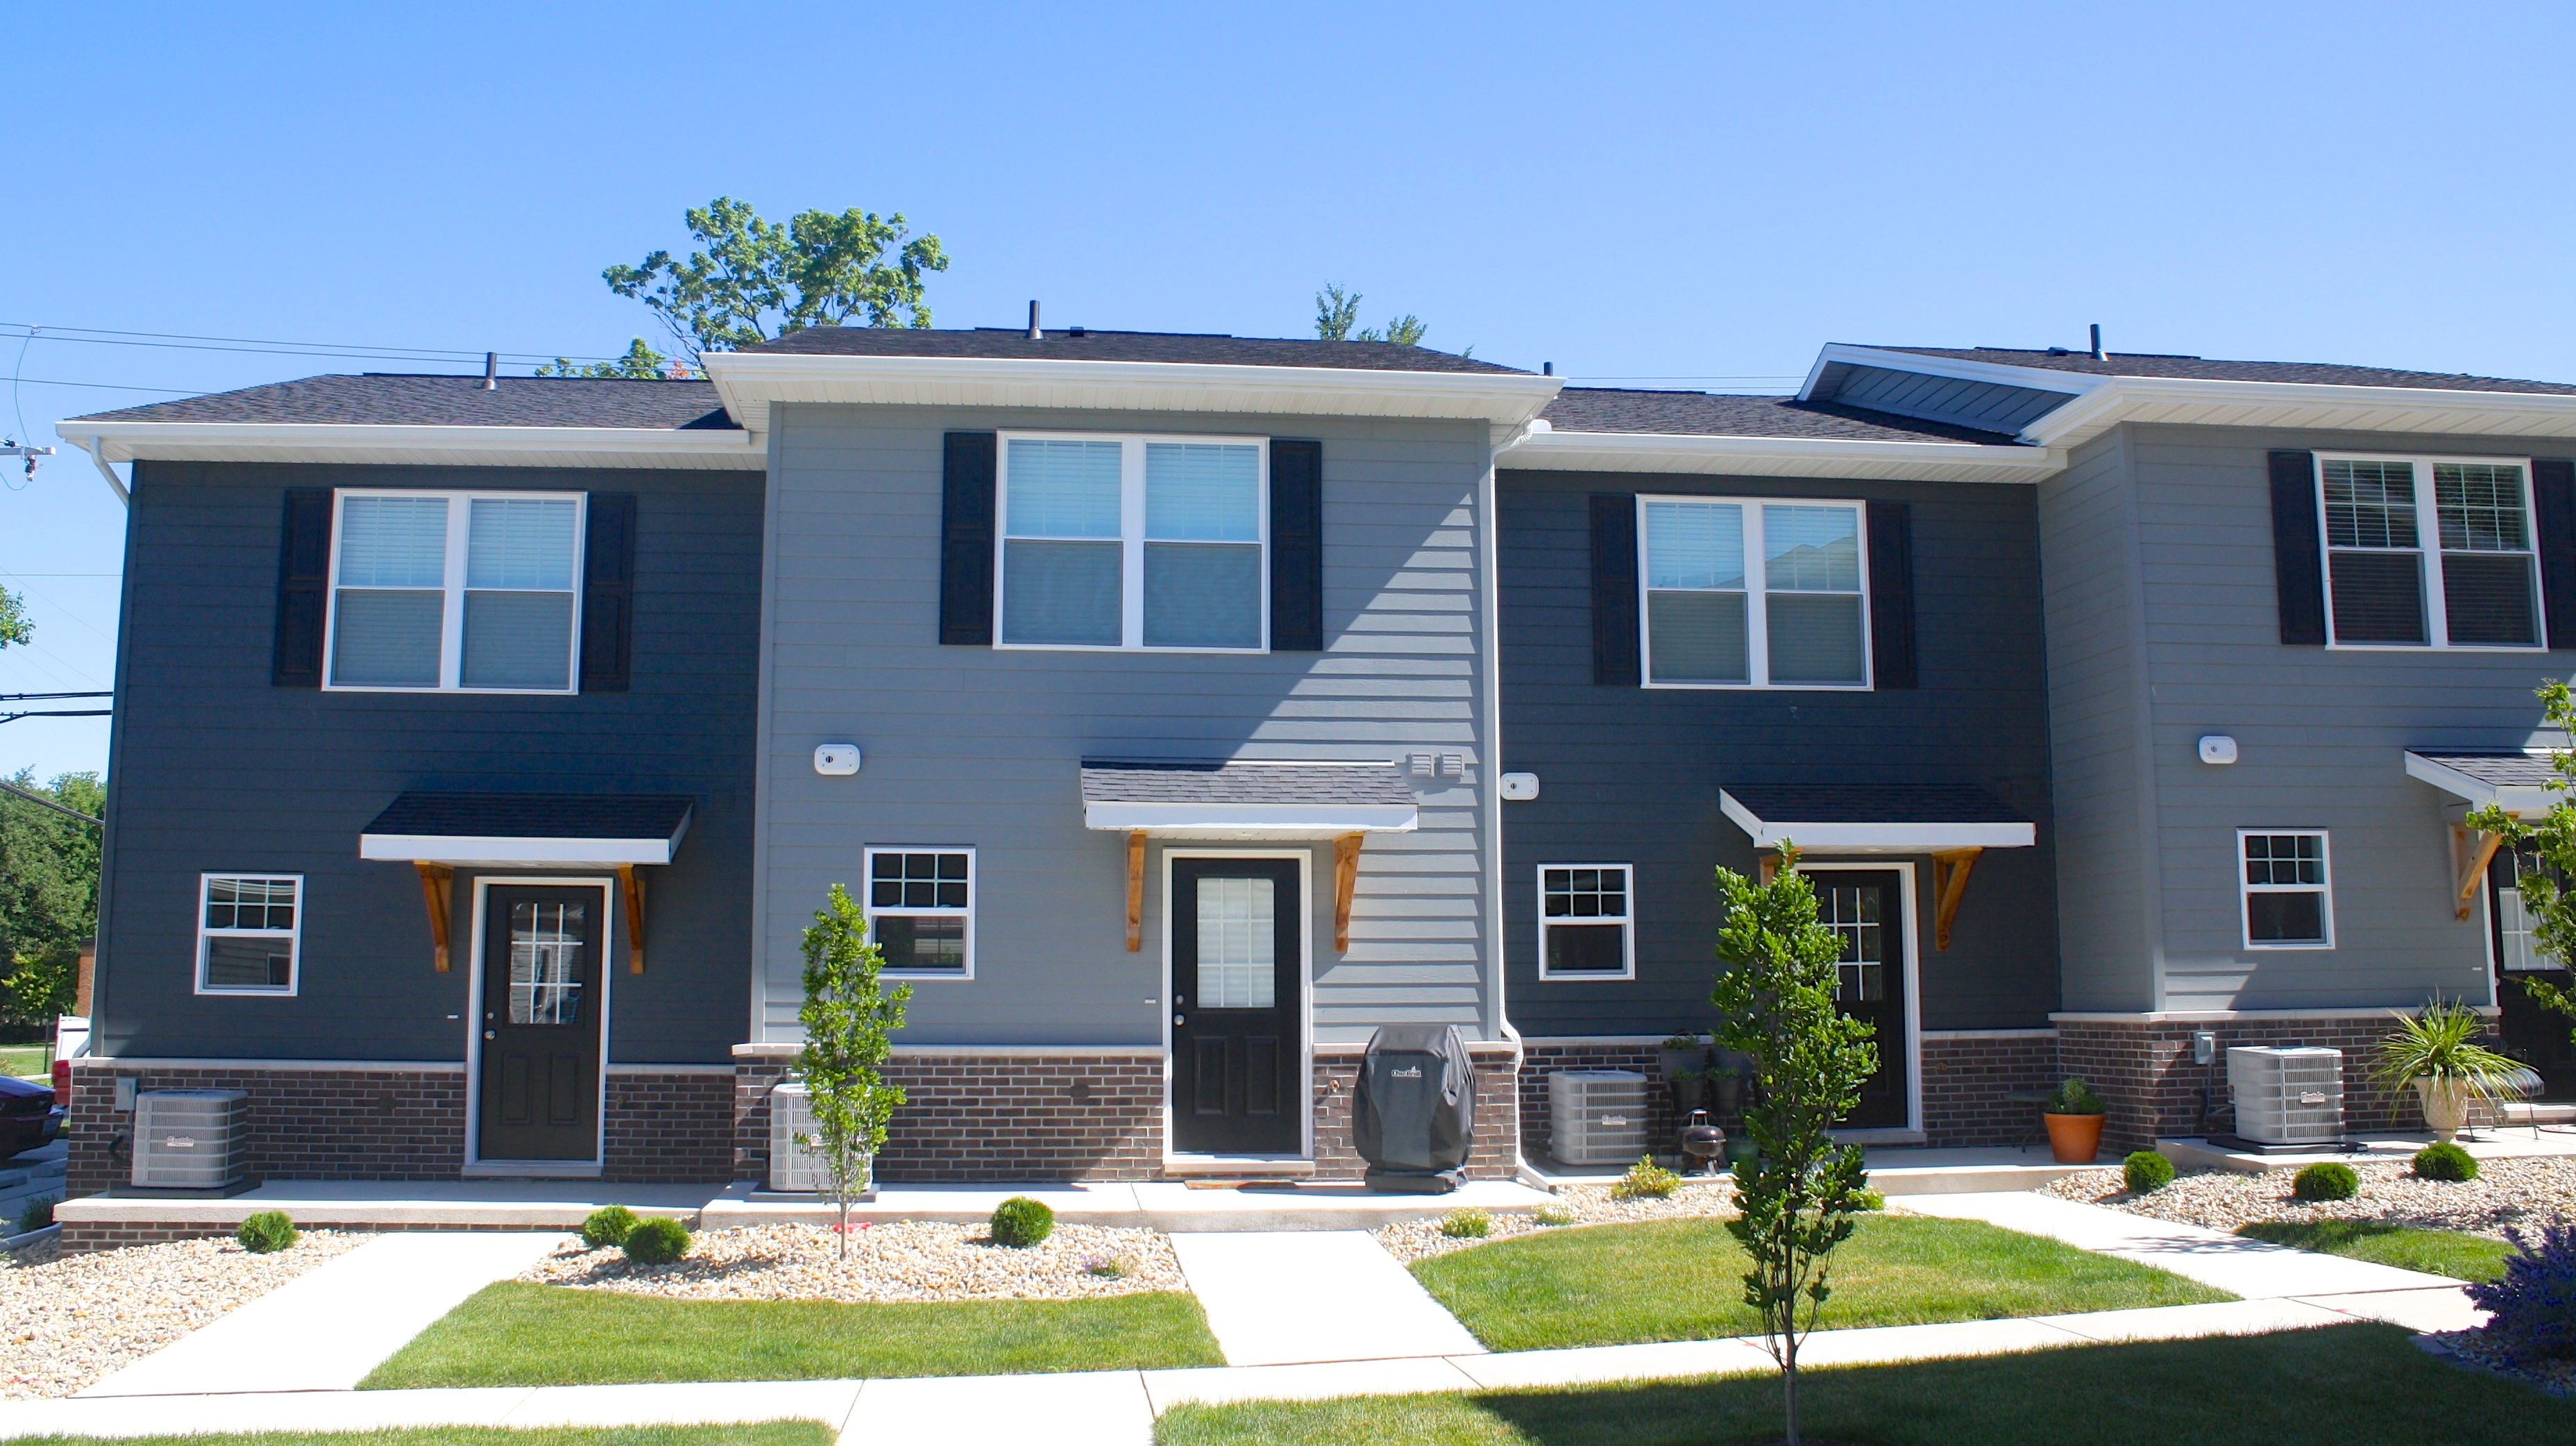 Fabulous james-hardie-fiber-cement-lap-siding-in-iron-gray-and-gray-slate  ZA58